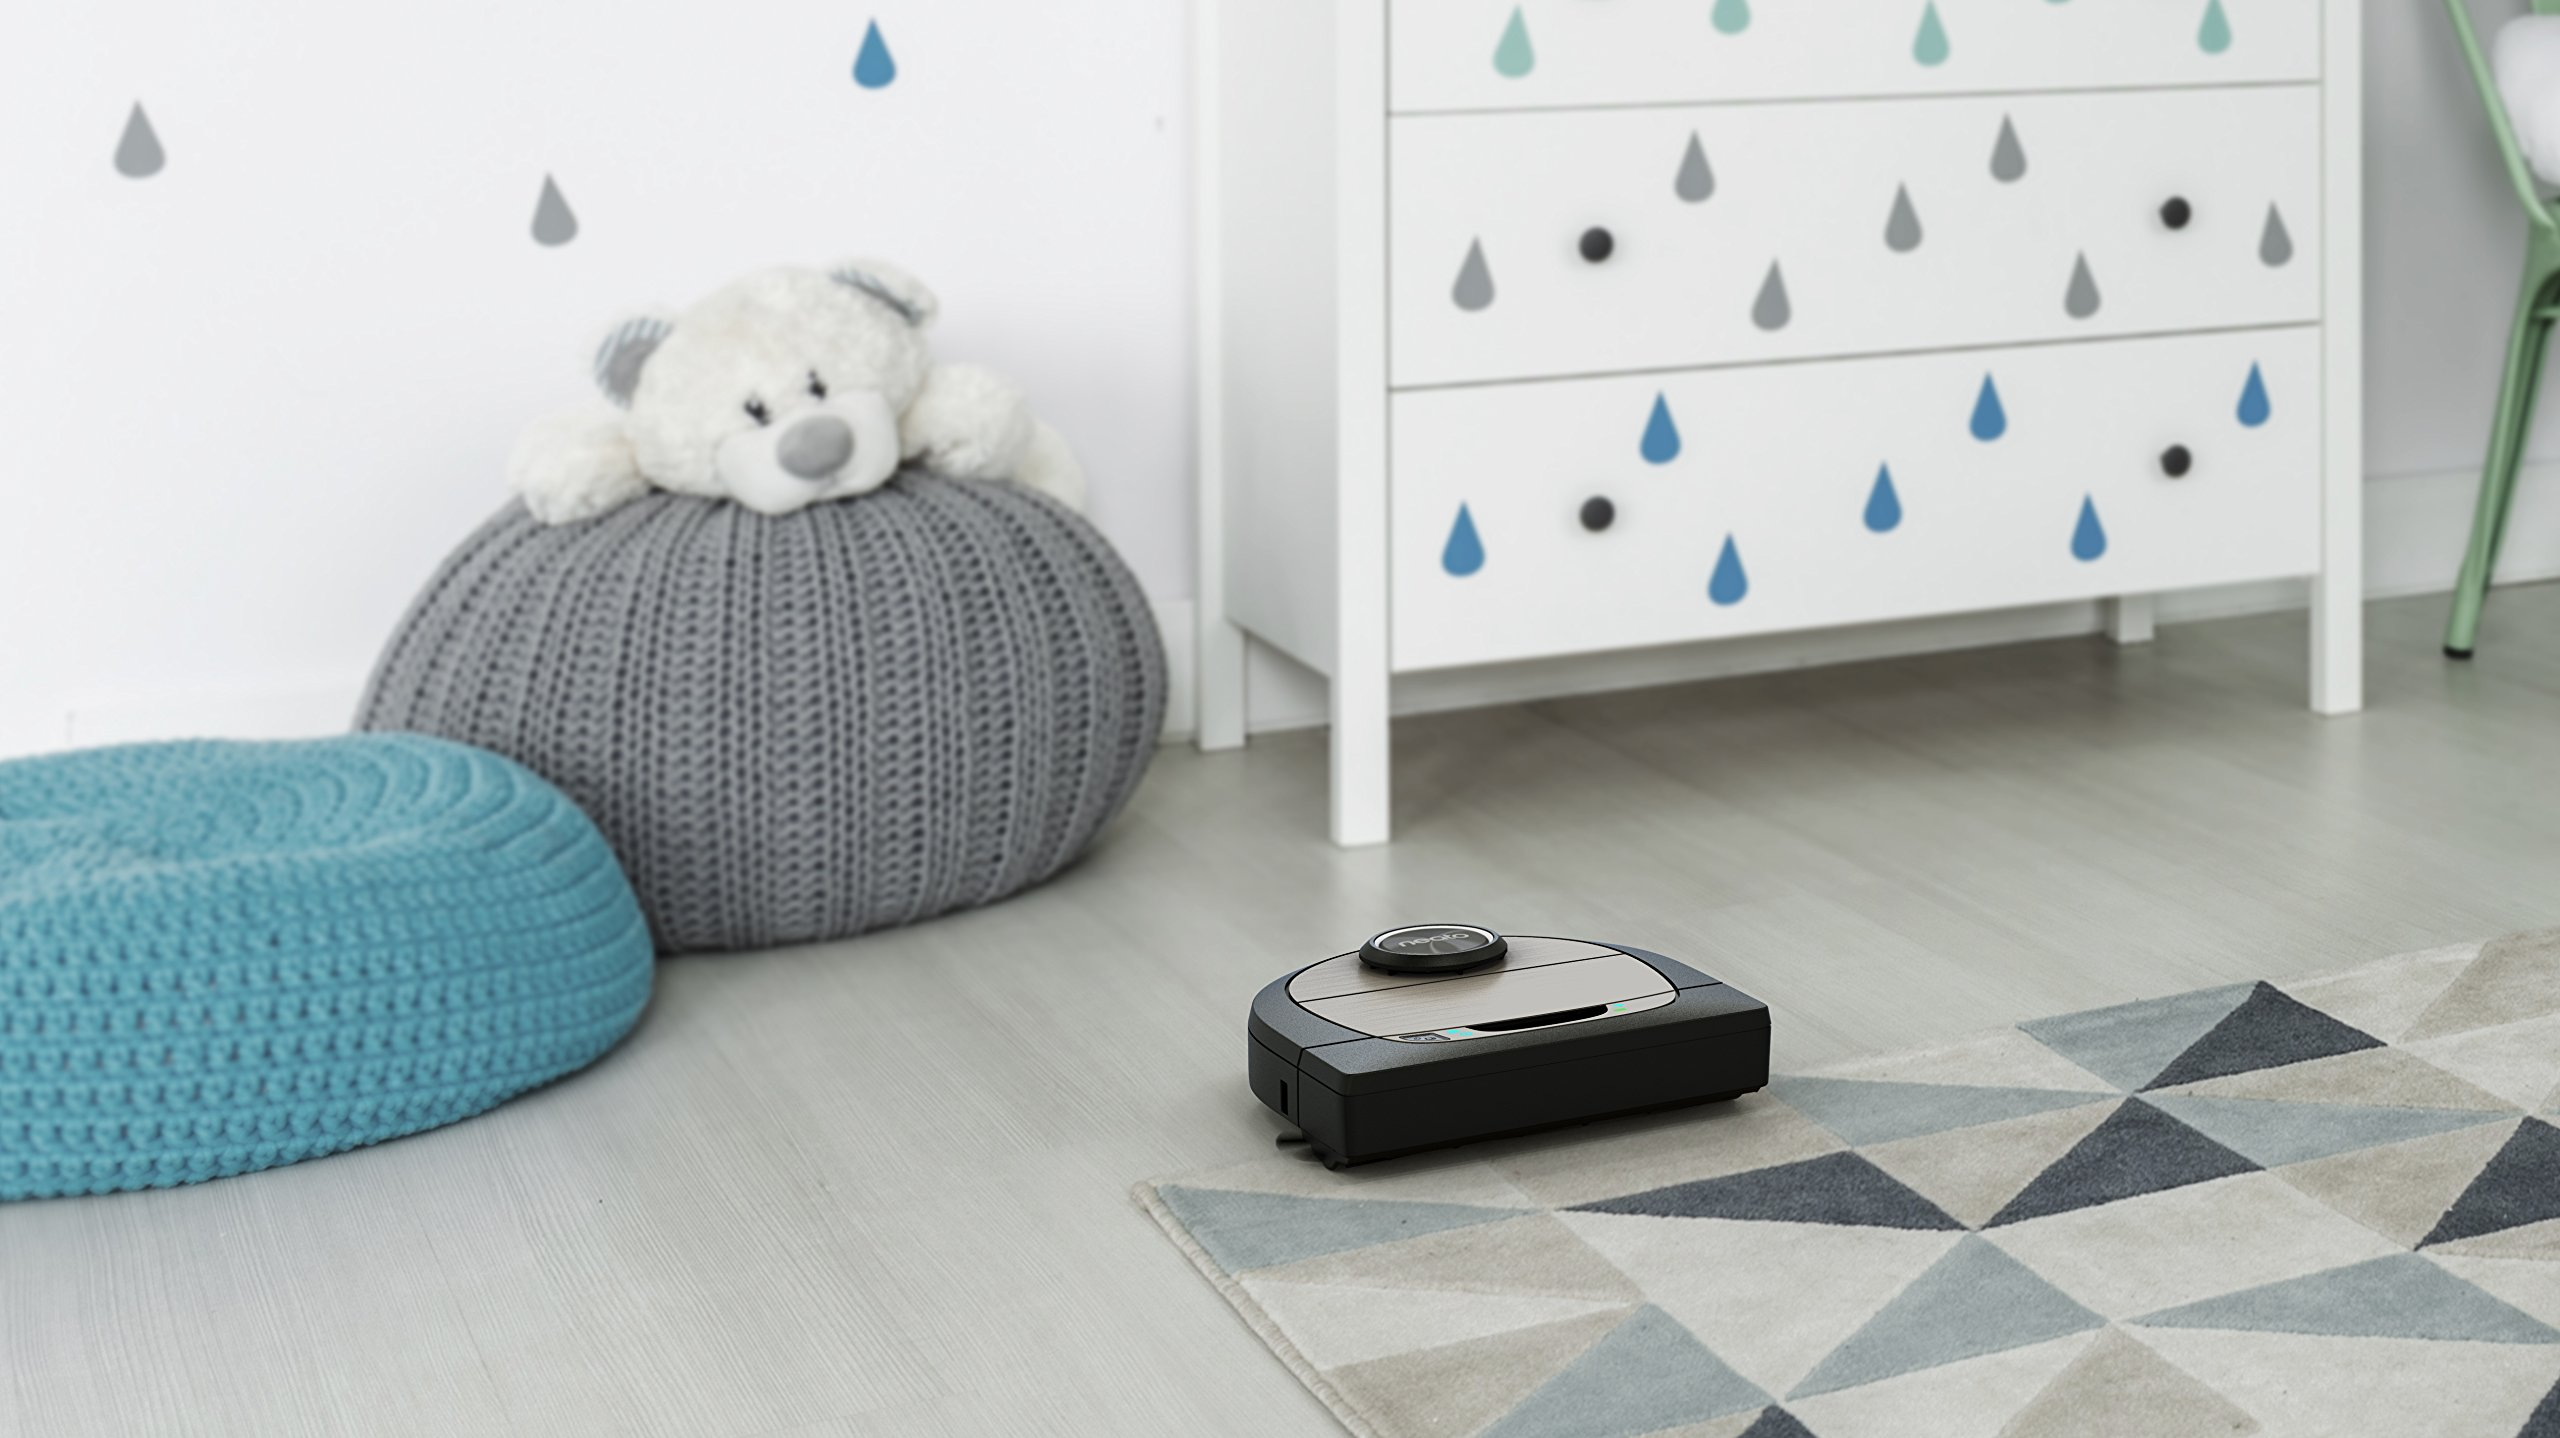 Neato Robotics D7 Connected Wi-Fi Enabled Robot Vacuum, Compatible with Amazon Alexa